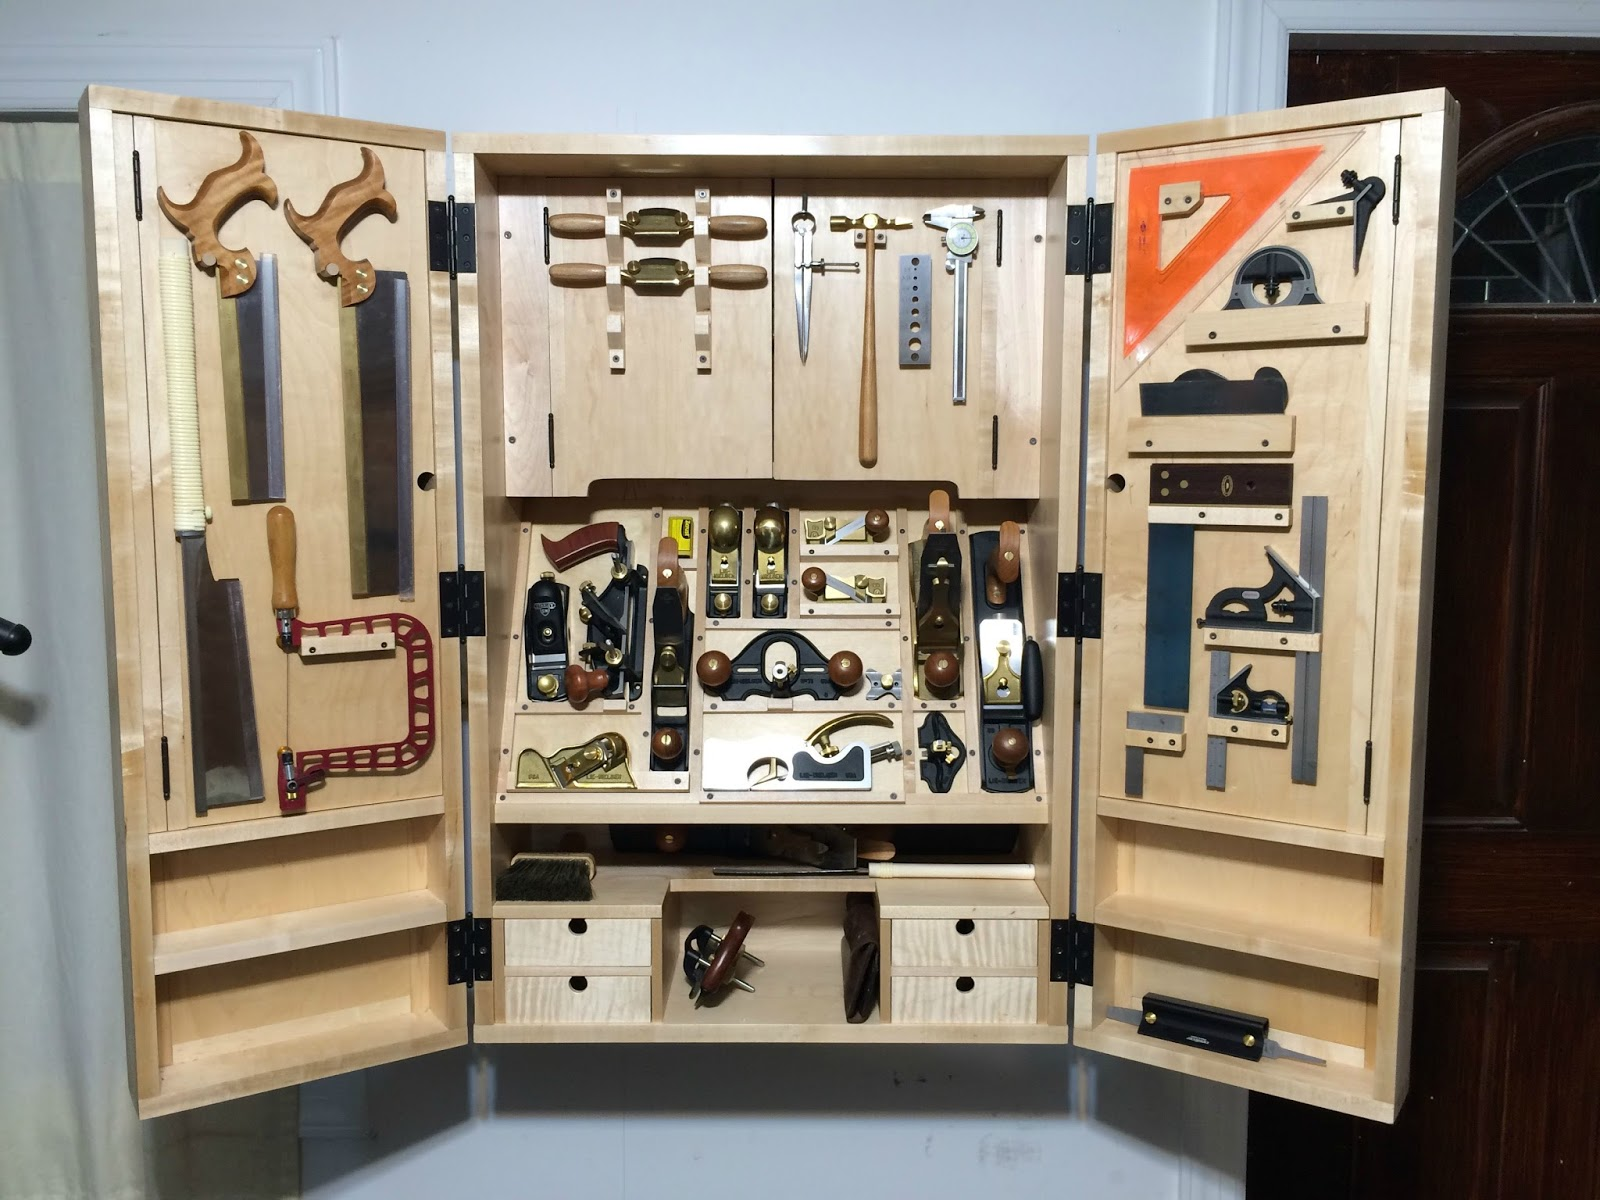 Superieur Kevin, A Customer From California Sent Over These Pictures Of His Wall  Mounted Tool Cabinet And A Very Nice Job Heu0027s Done Too!